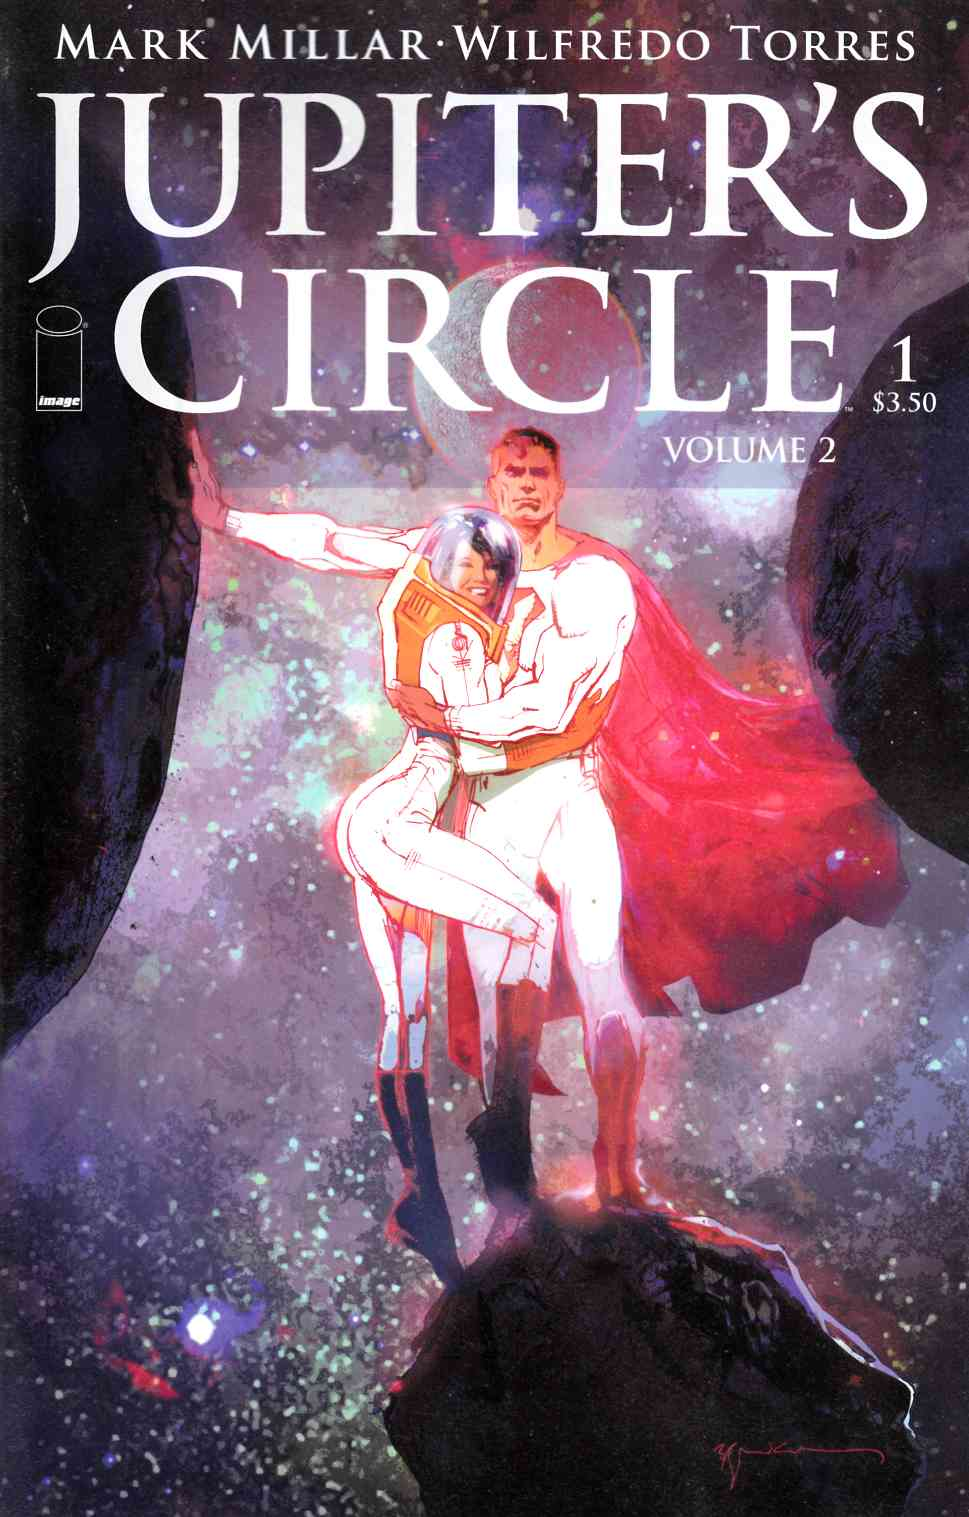 Jupiters Circle Vol 2 #1 Cover A- Sienkiewicz [Image Comic] LARGE